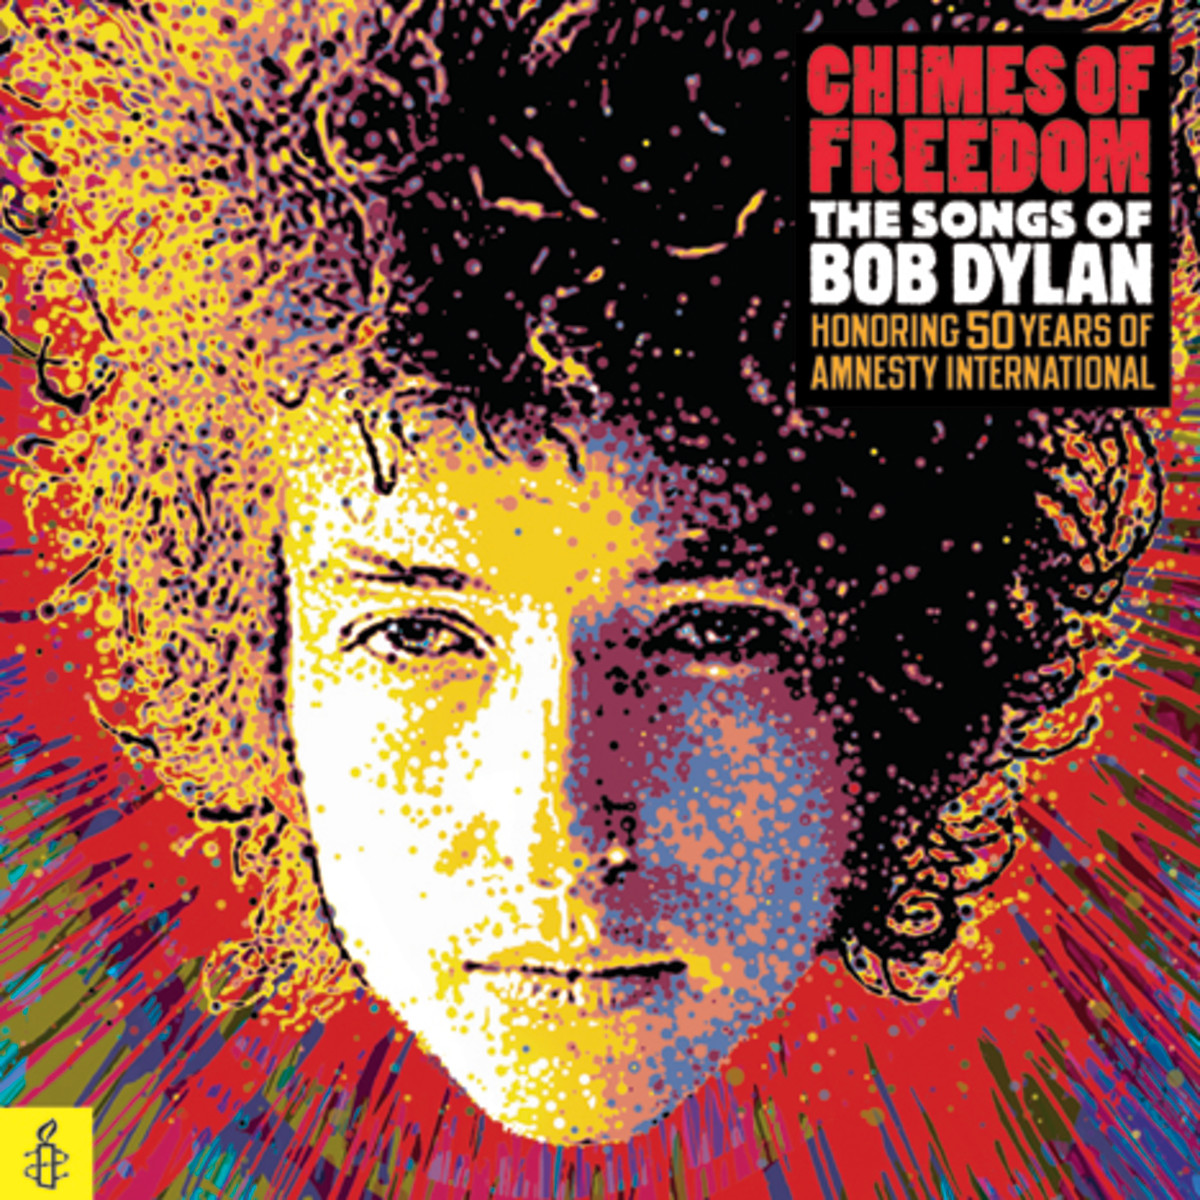 Bob Dylan Chimes of Freedom The Songs of Bob Dylan HOnoring 50 Years of Amnesty International